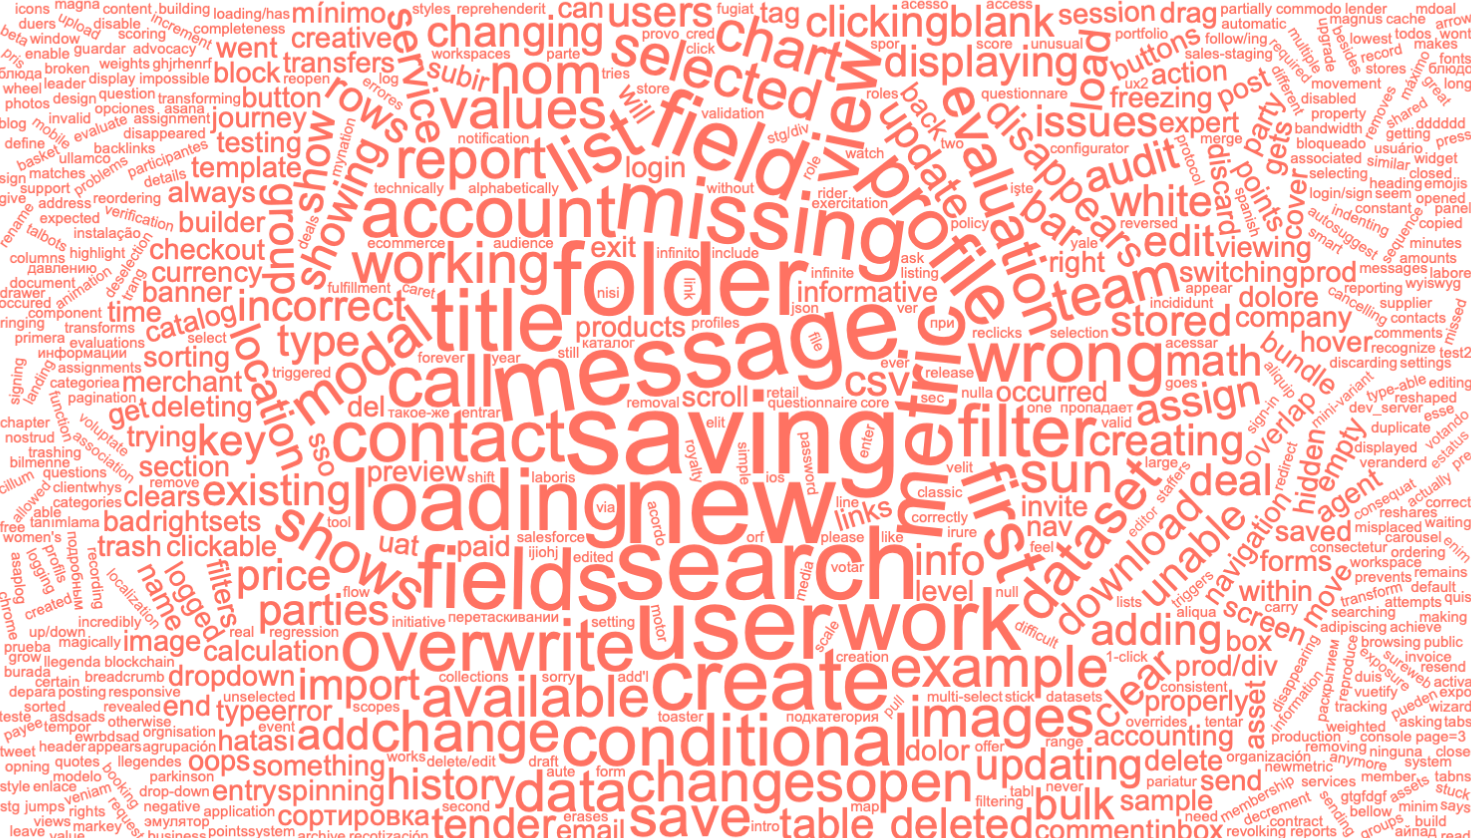 Image depicting the seven highest ranking words found in over 3000 bug reports we analyzed